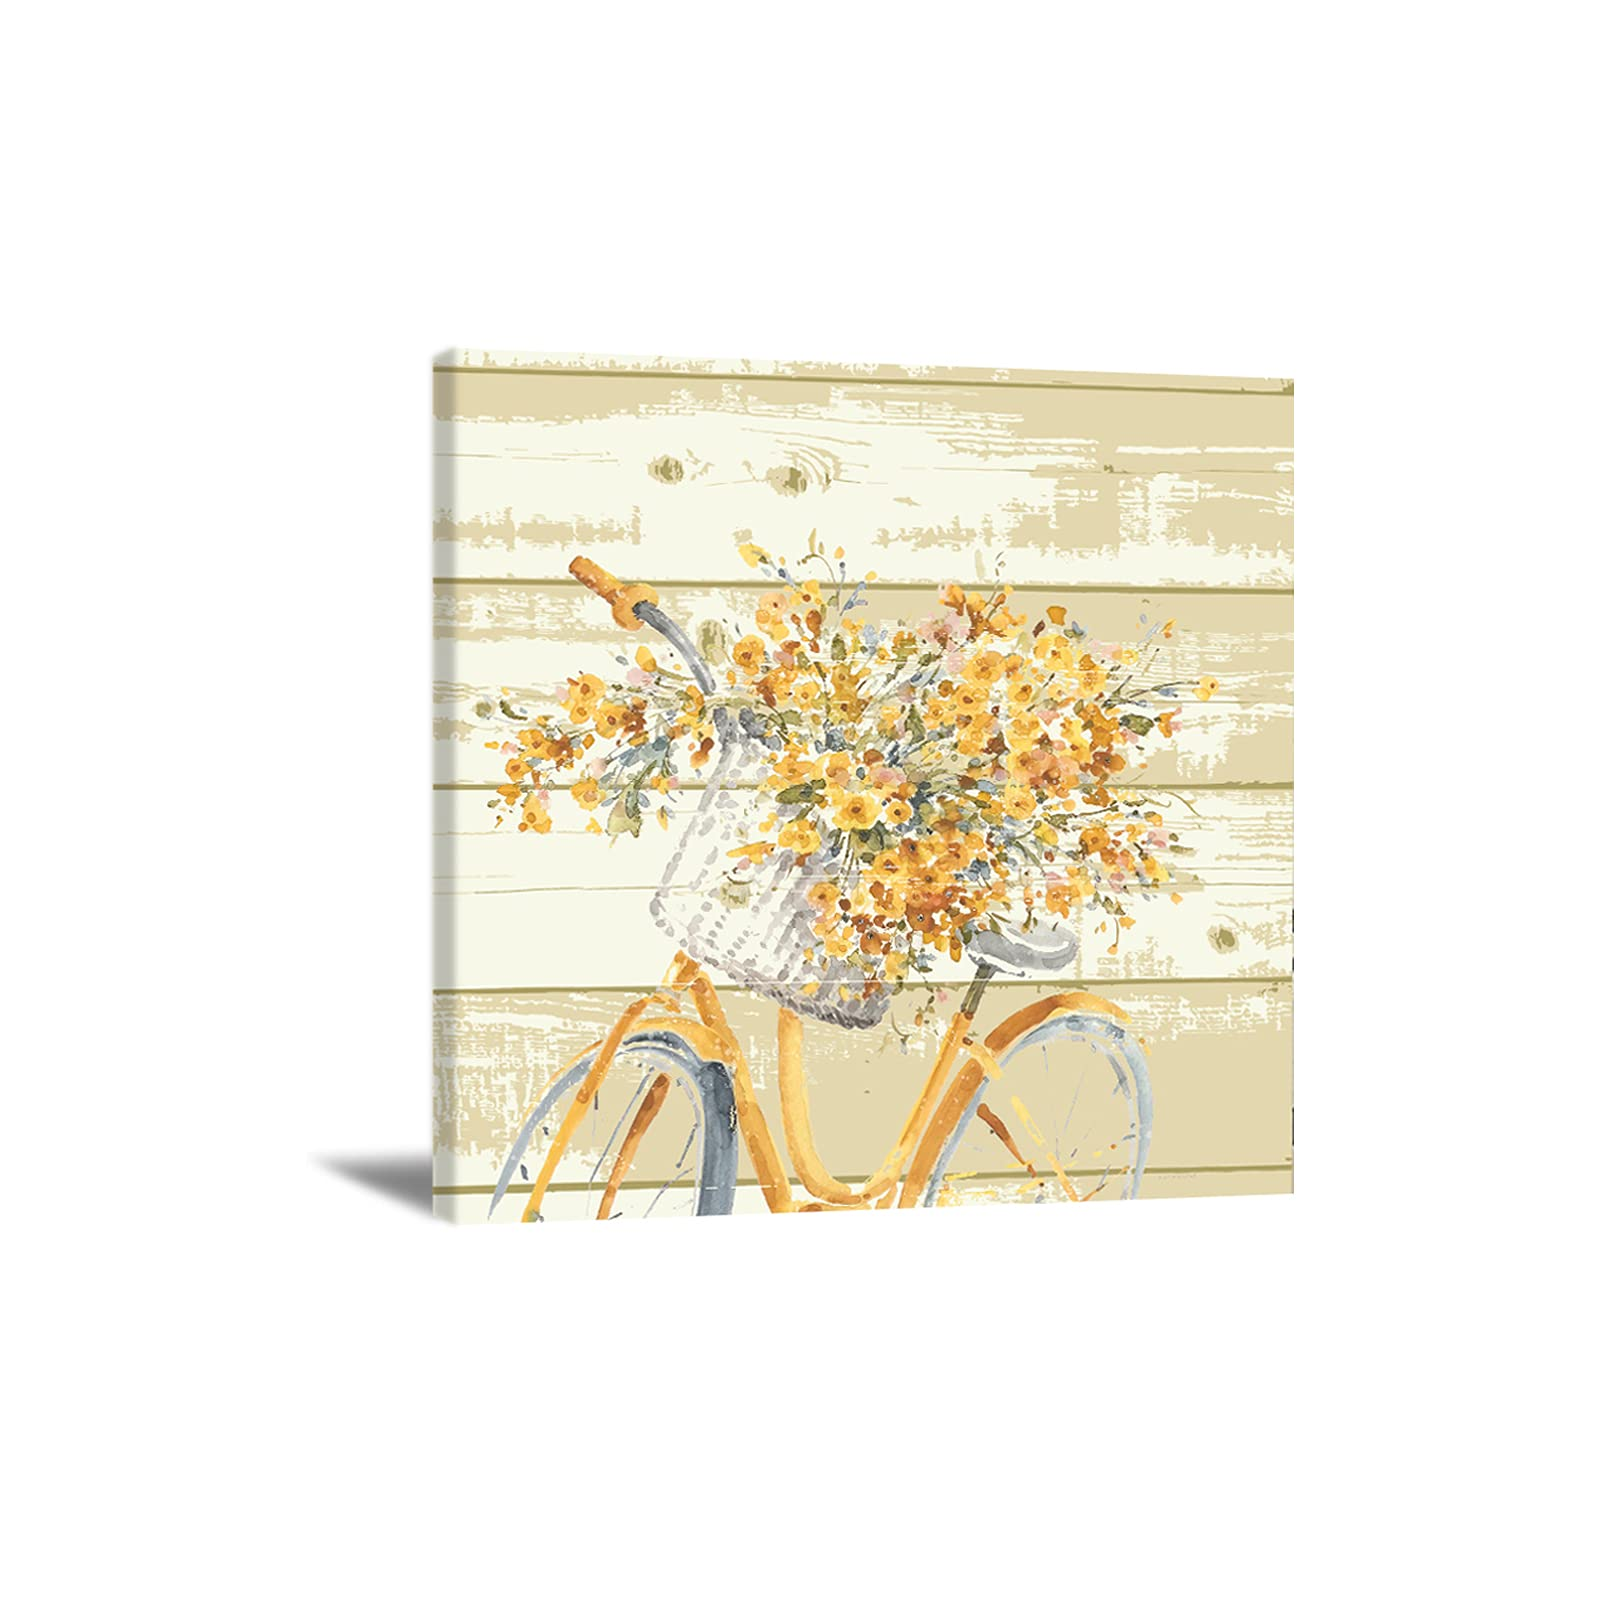 Retro Bicycle Canvas Wall Art Yellow Flower Wood Board wall Art Bicycle Basket Flower Wall Art Modern Flower Wall Art Bathroom Decor for Kitchen Dining Bedroom Home Office 12x12inch No-frame